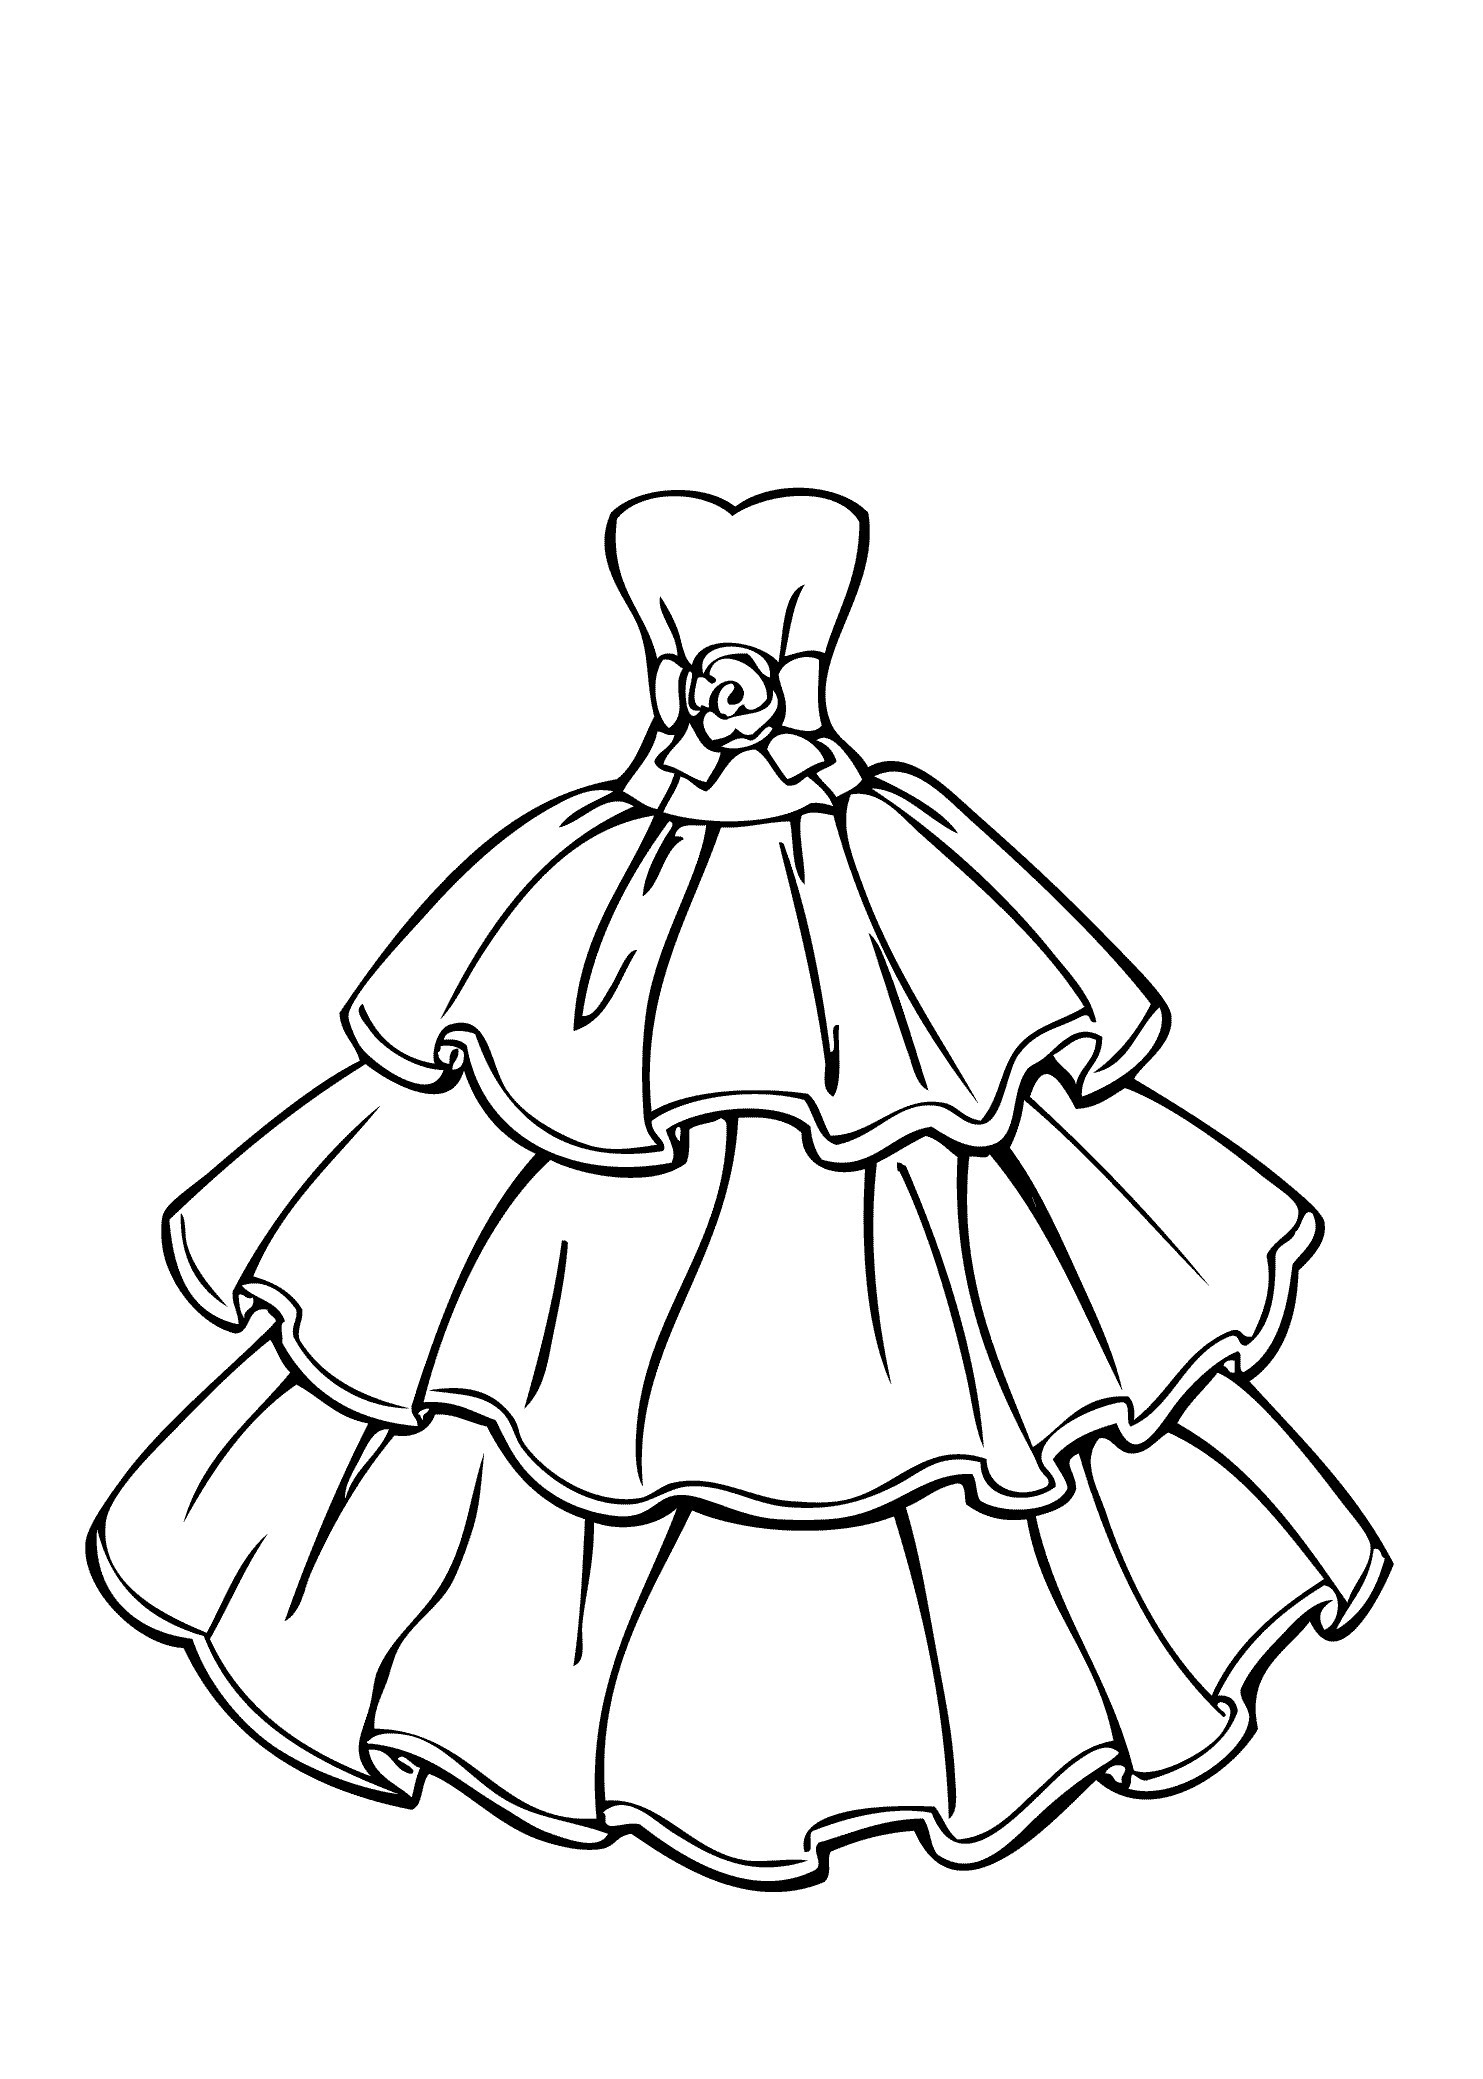 Download Outfit Coloring Pages at GetColorings.com   Free printable ...